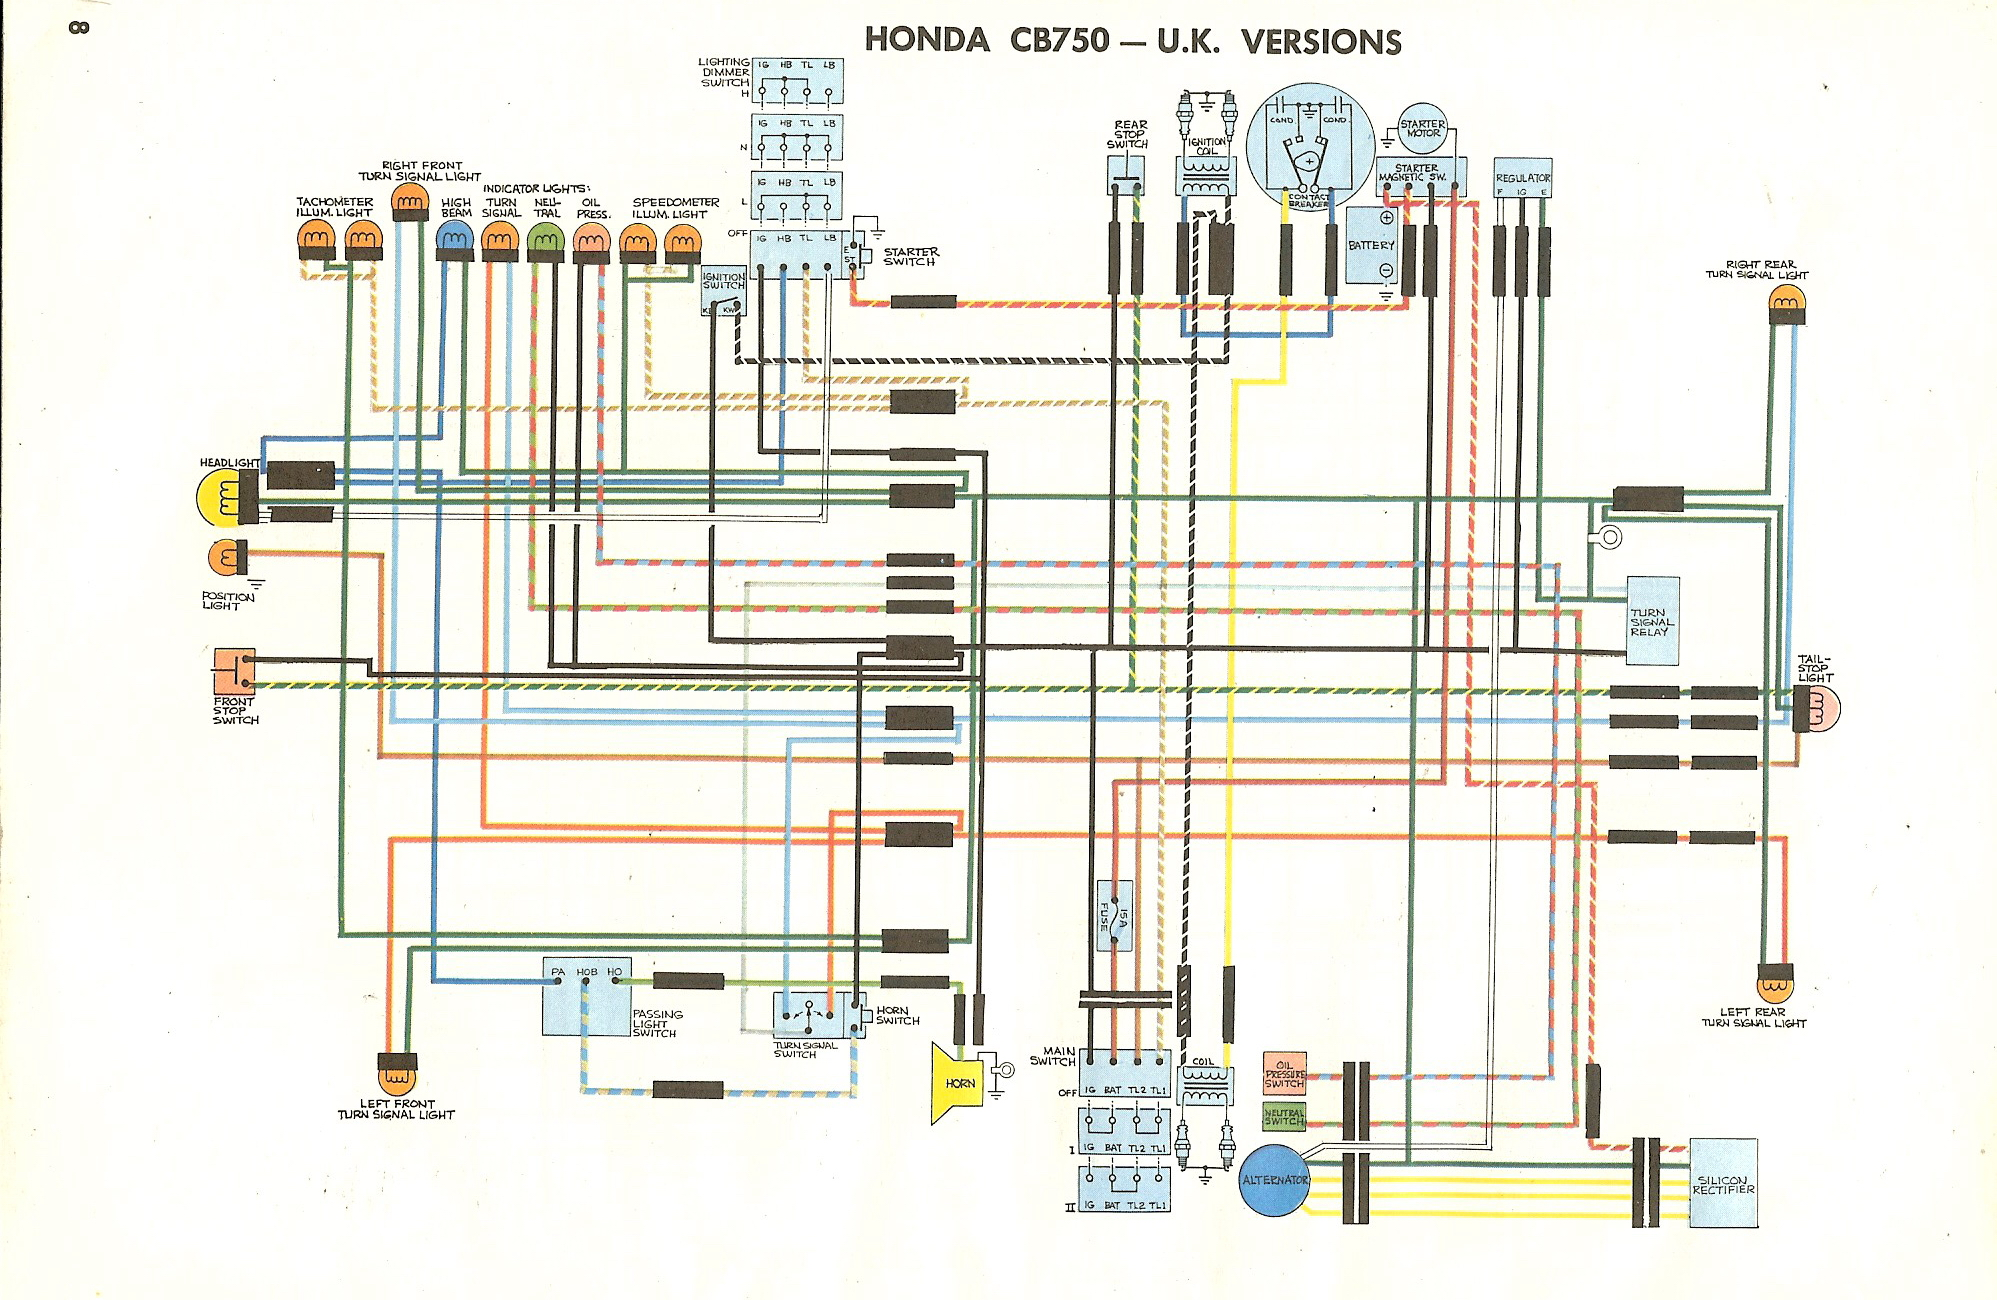 1978 honda cb750k wiring diagram 1978 honda civic wiring diagram